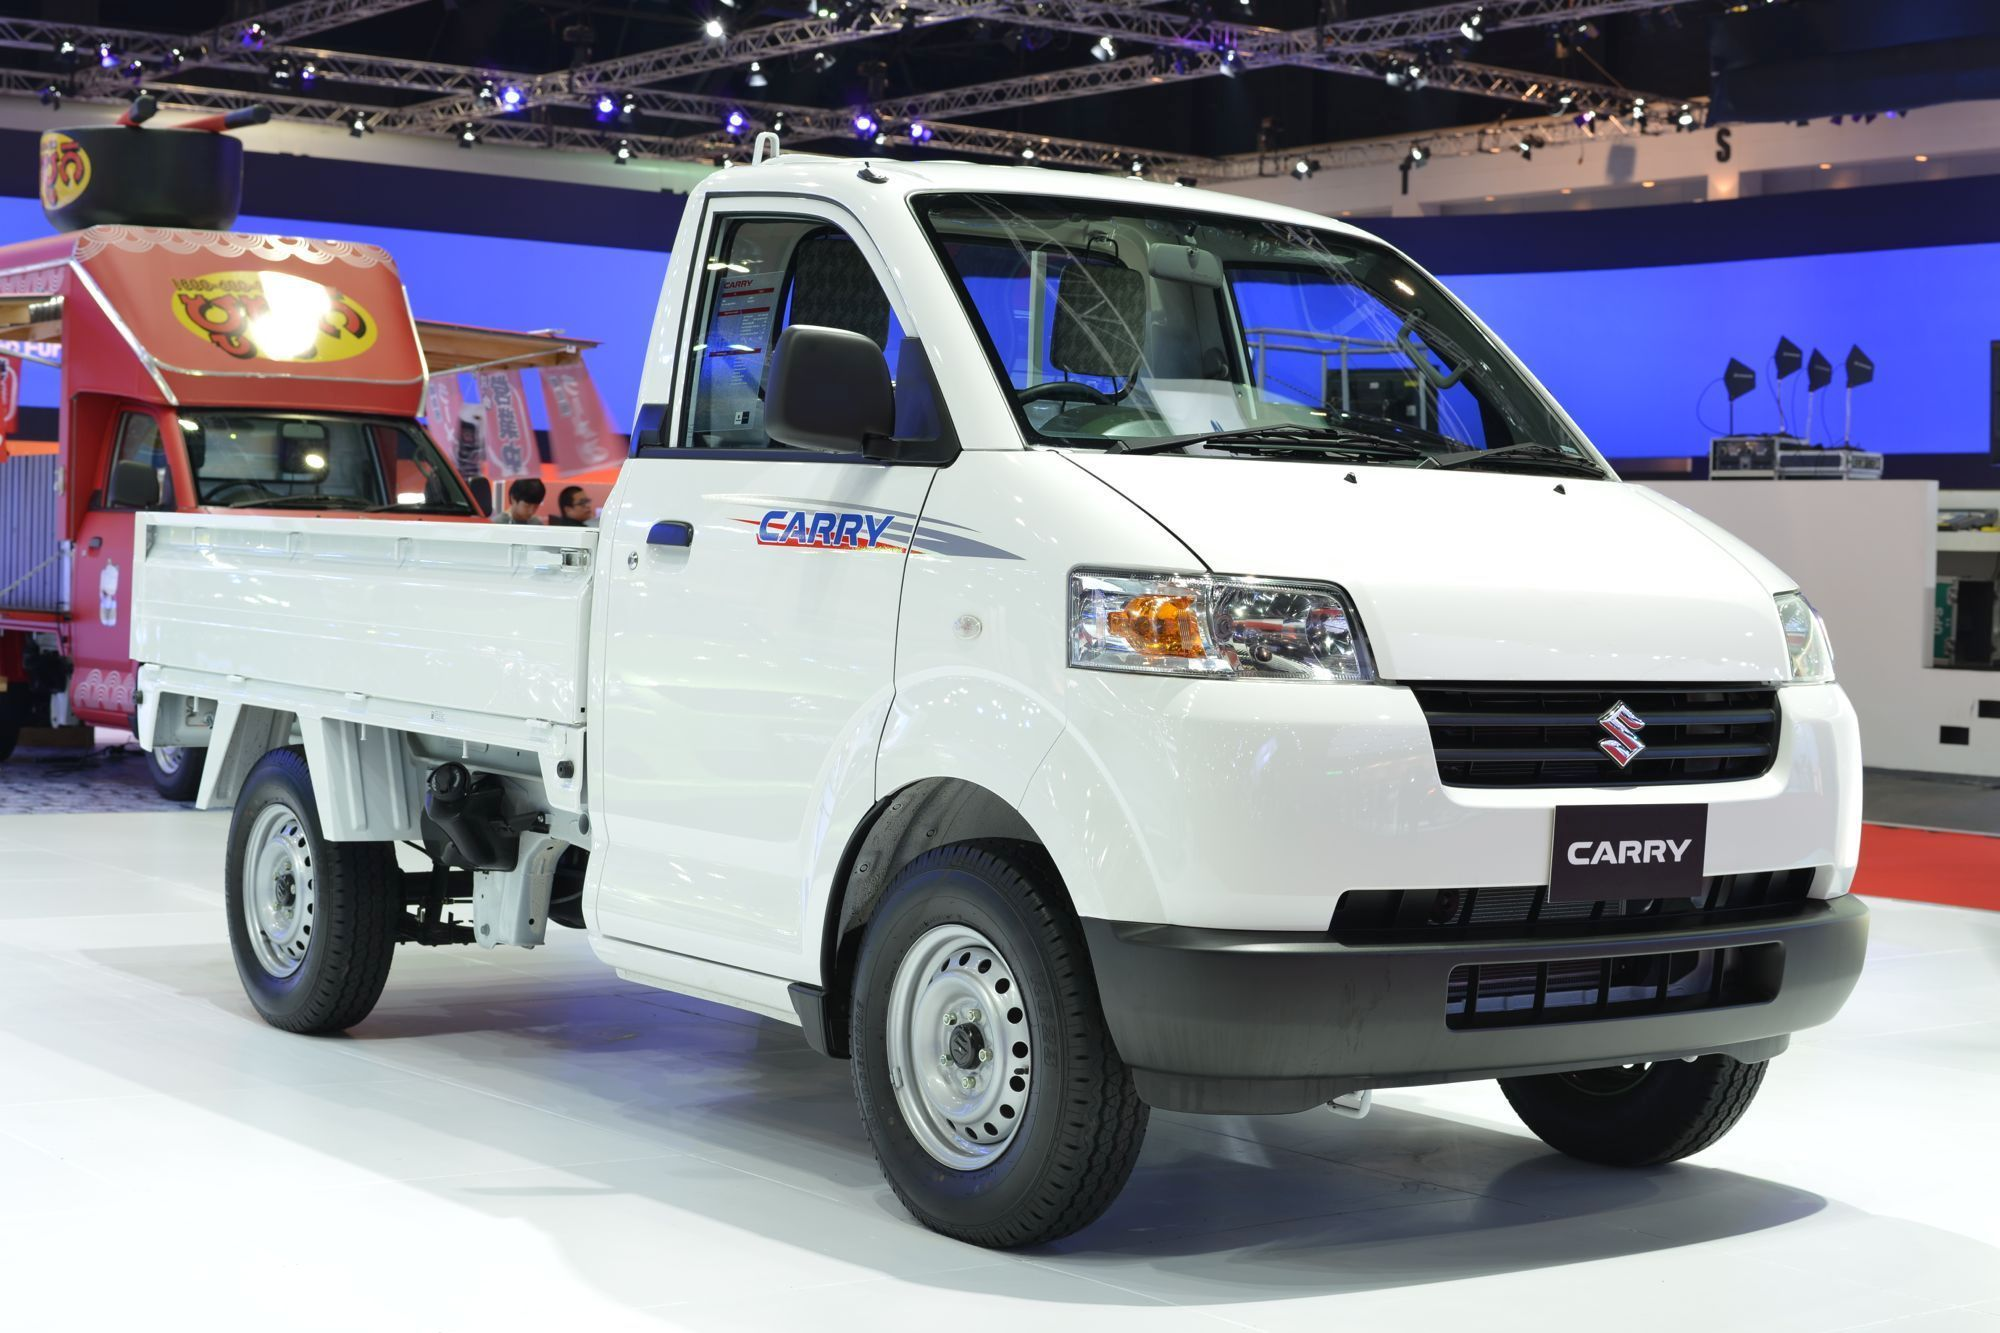 Maruti Suzuki to bring Carry LCV; showcased at the Bangkok Motor Show